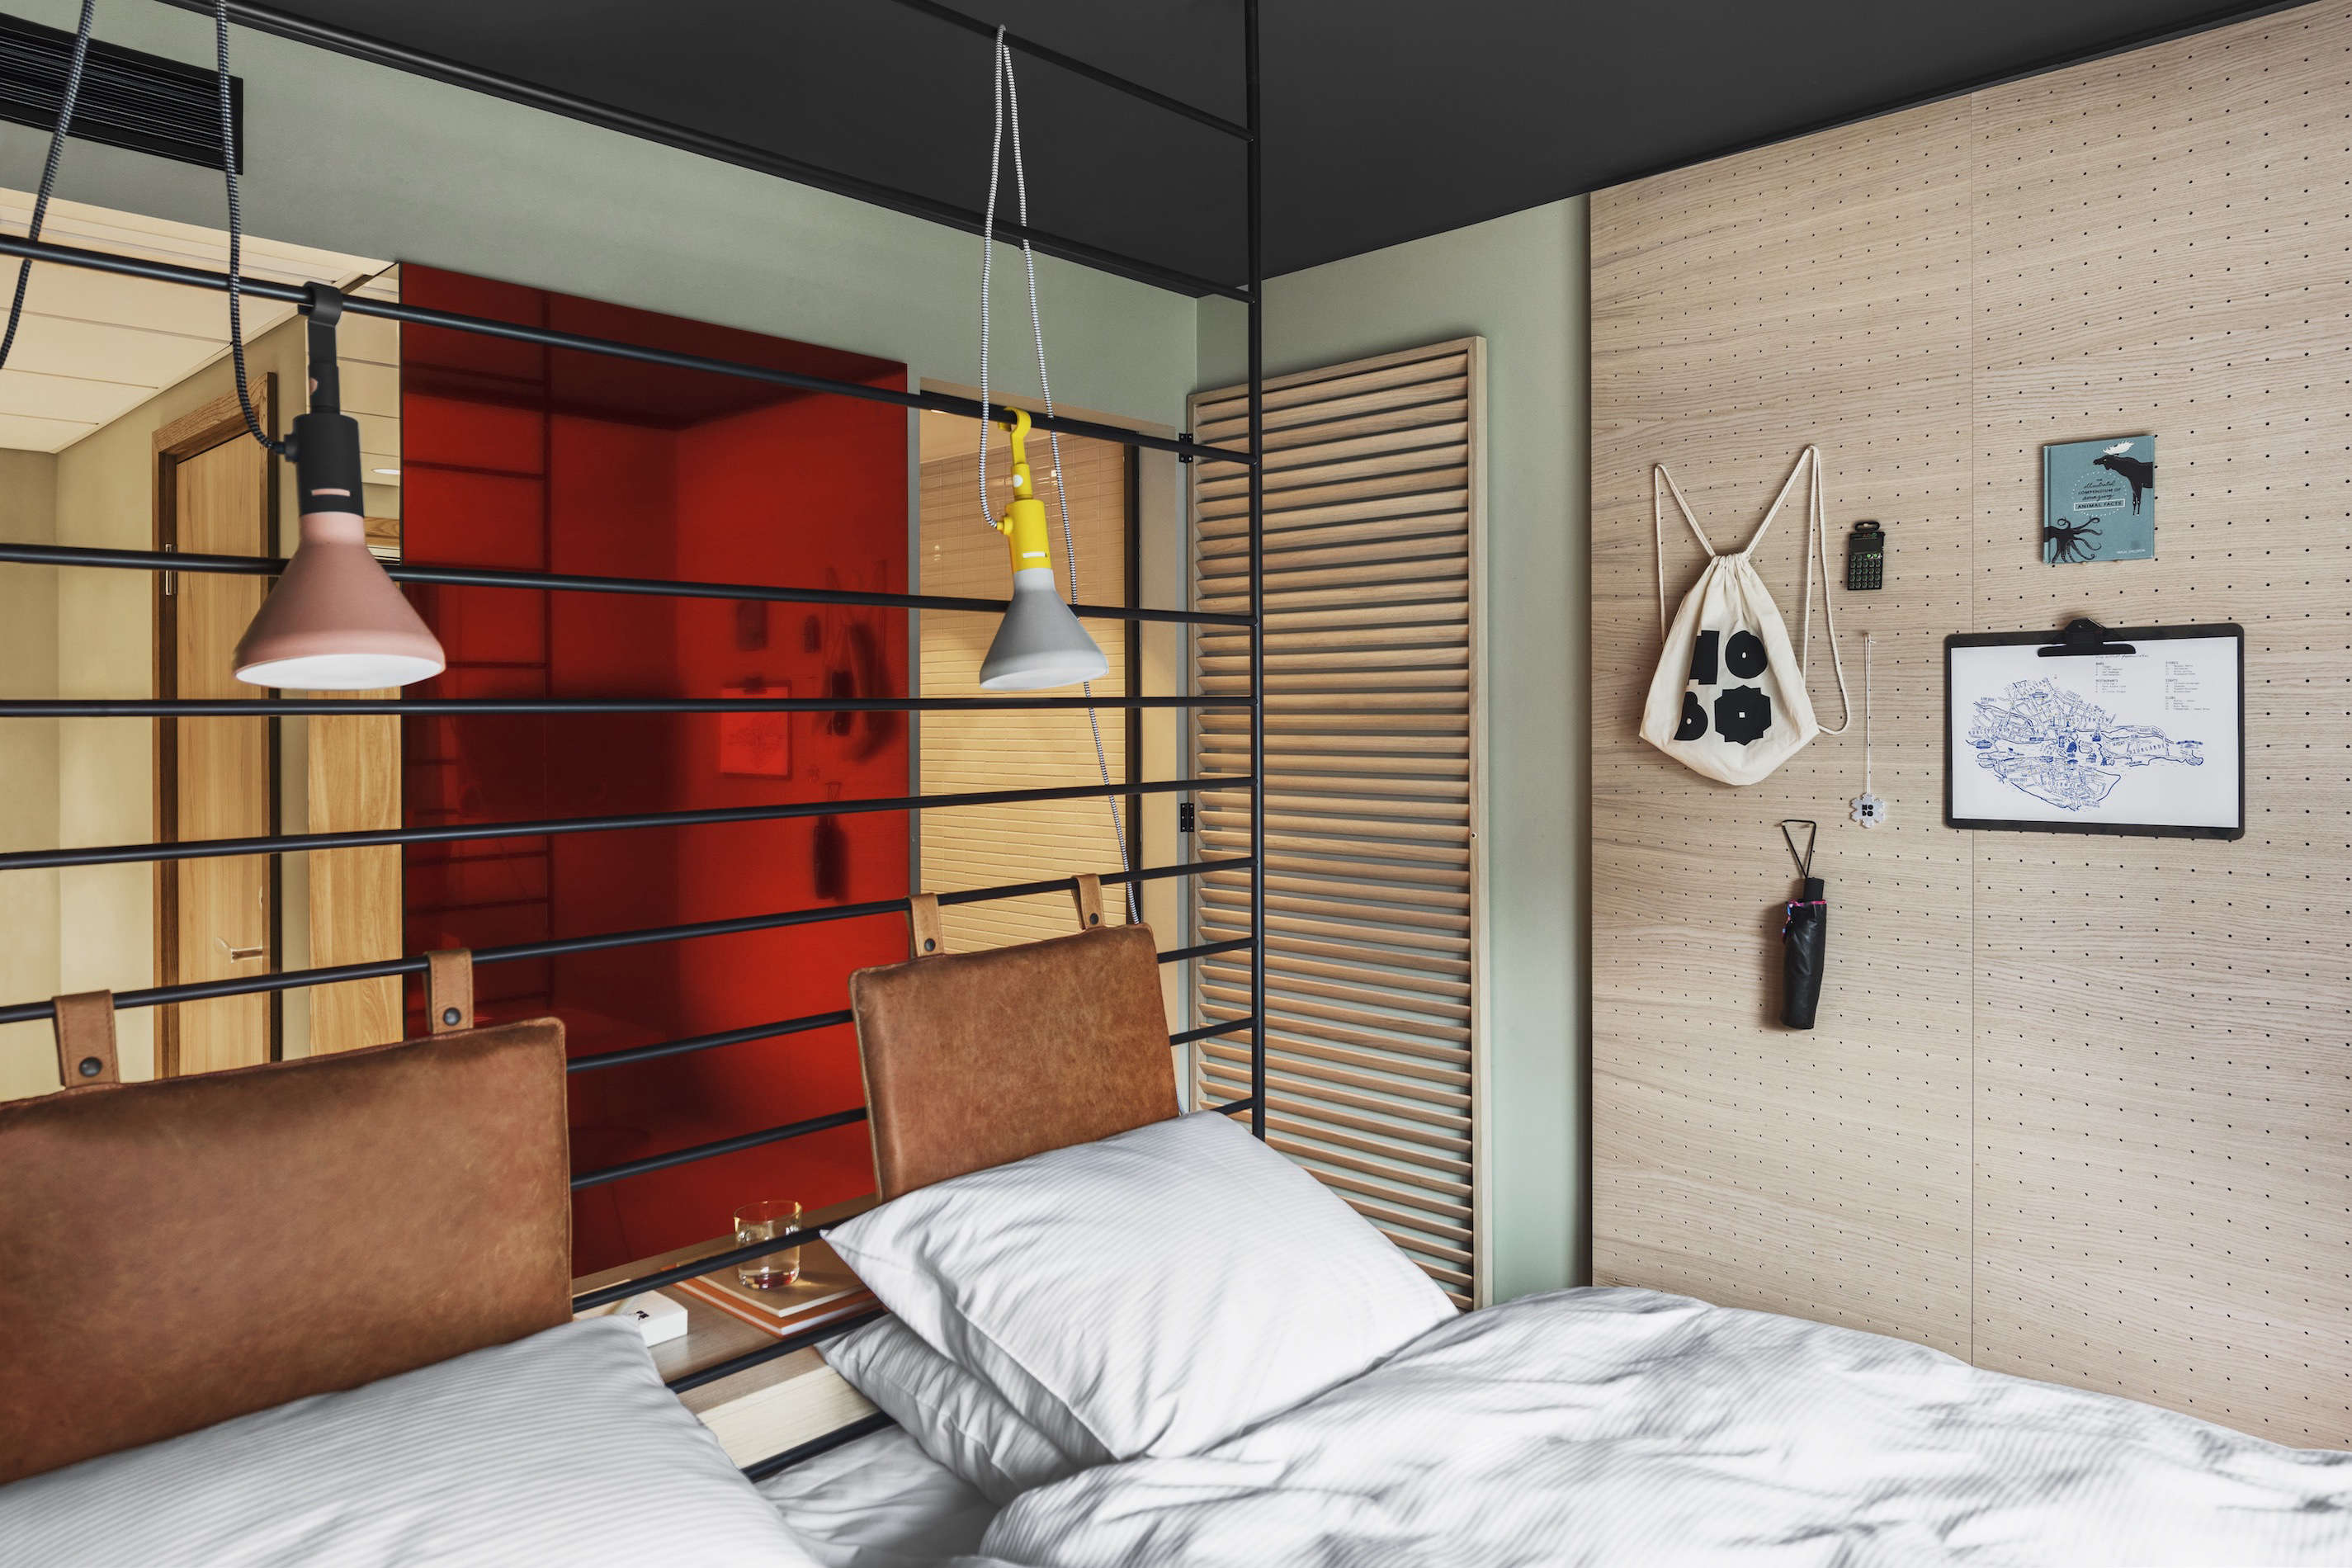 Red mirror, Hobo Hotel, Stockholm. Studio Aisllinger design. Erik Lefvander photo.